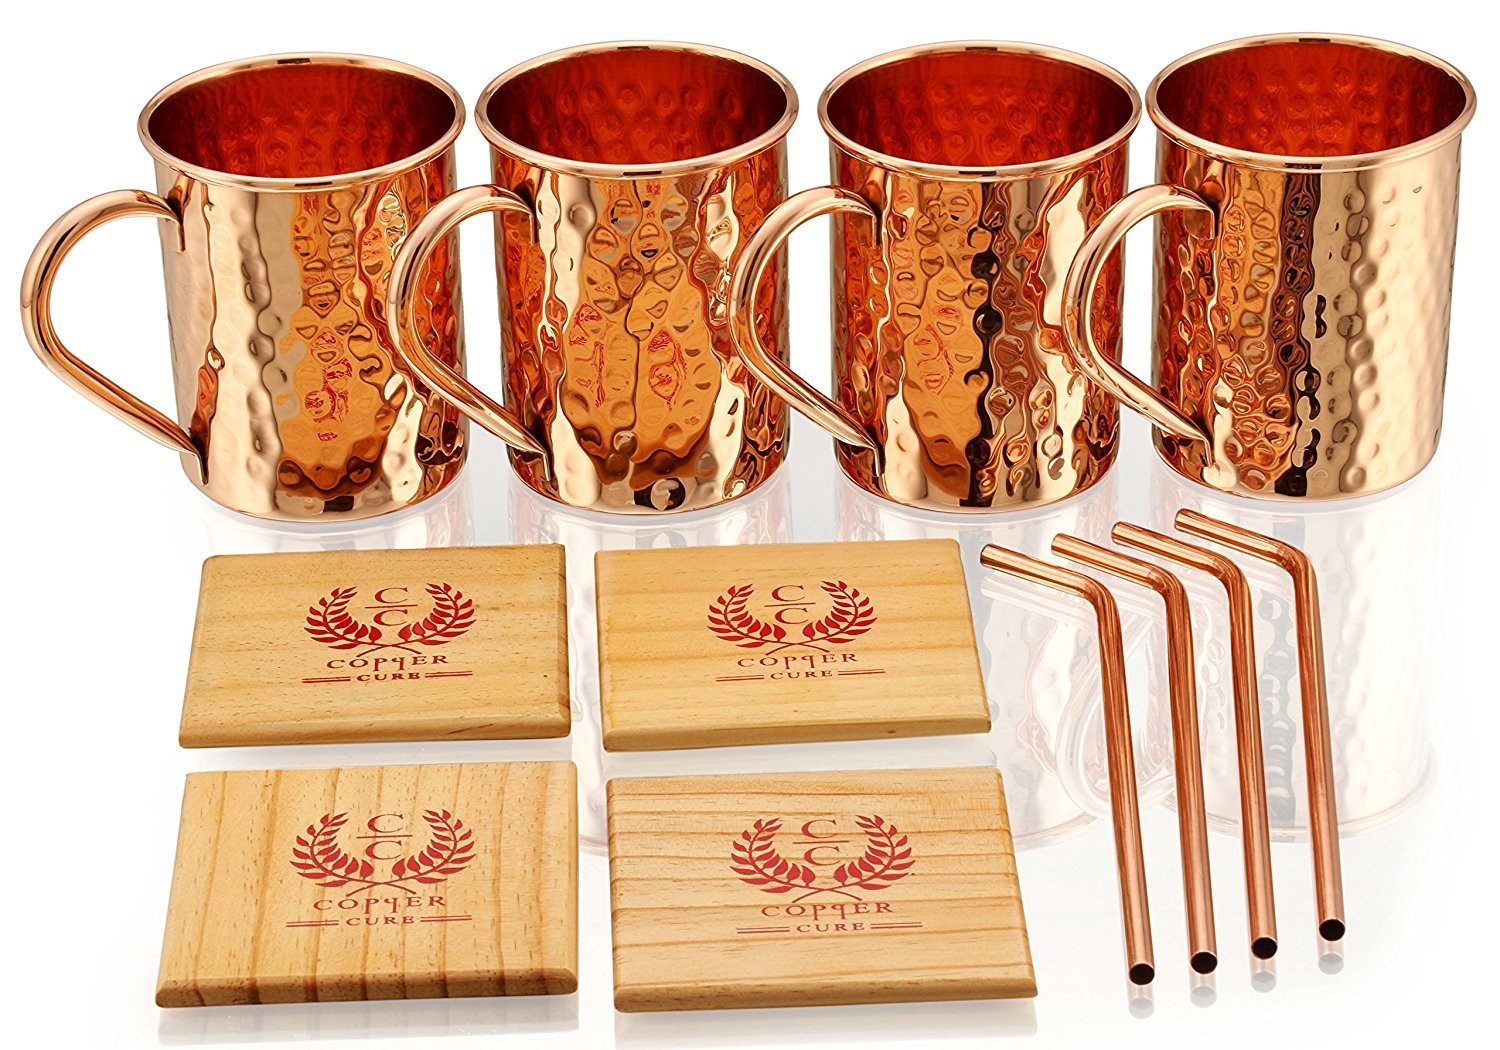 SOLID COPPER MUGS WITH COPPER STRAWS AND PINE WOOD COASTERS – PREMIUM QUALITY -16 Oz Hammered Mug – 100% Handcrafted…